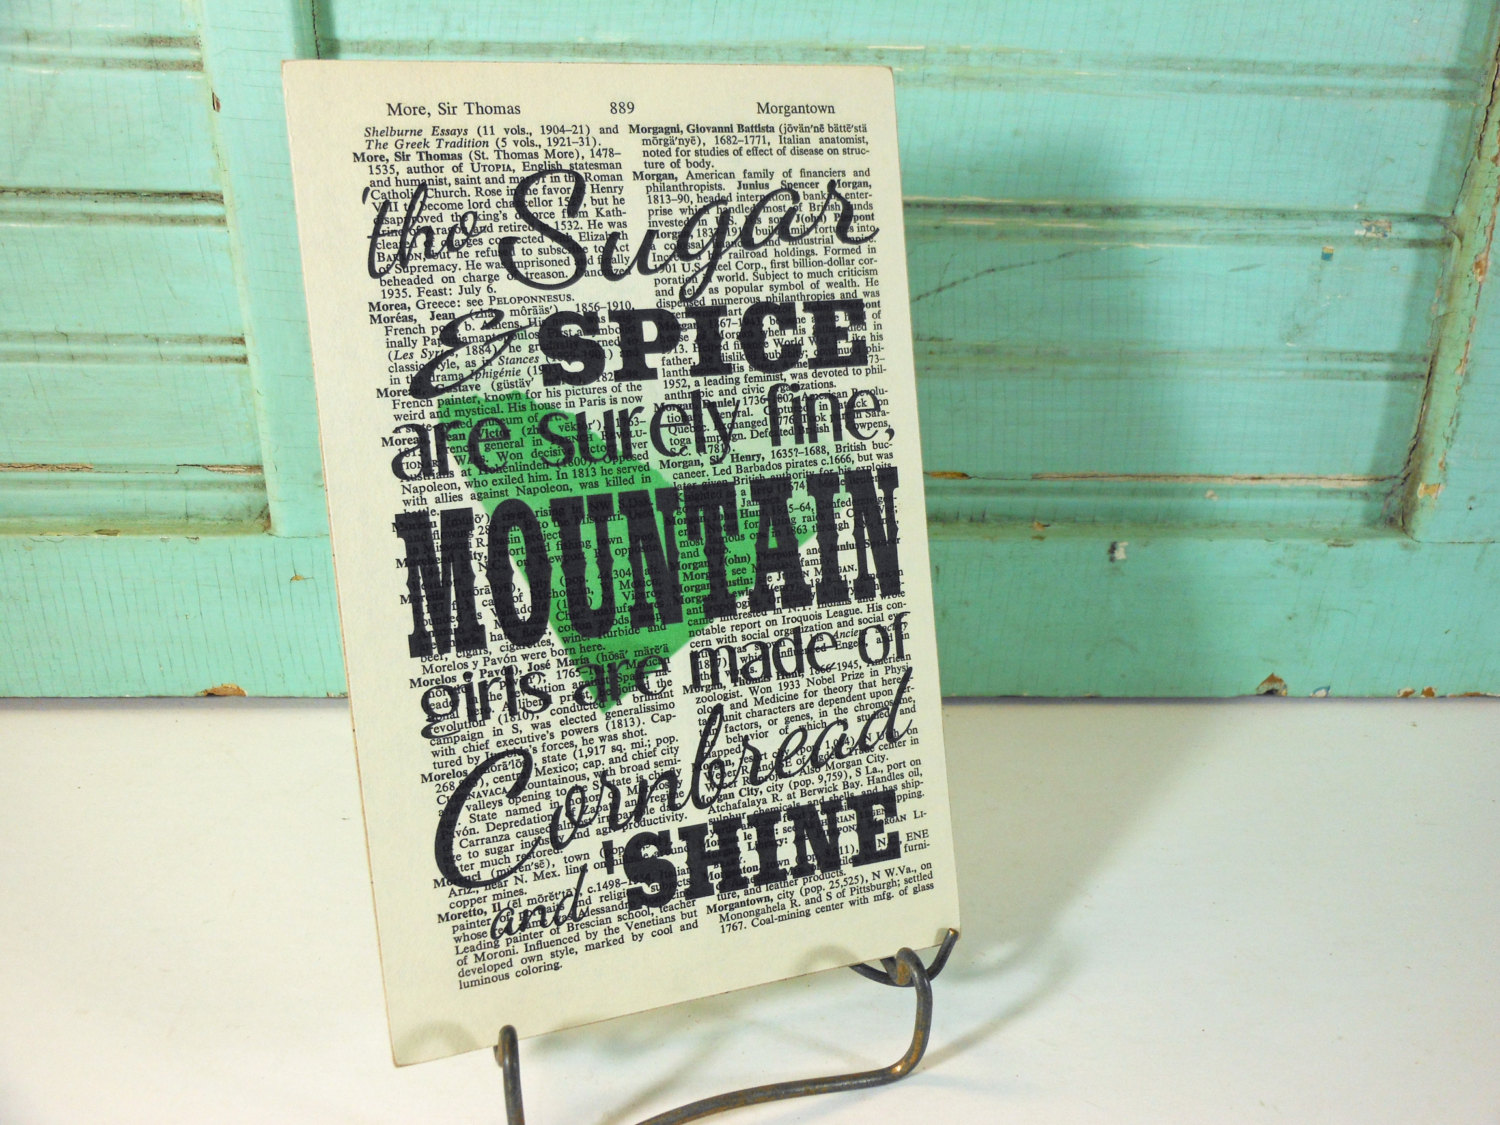 Mountain Girls Print on Page from Vintage Encyclopedia Digest Mounted on Hardboard Cornbread and Moonshine